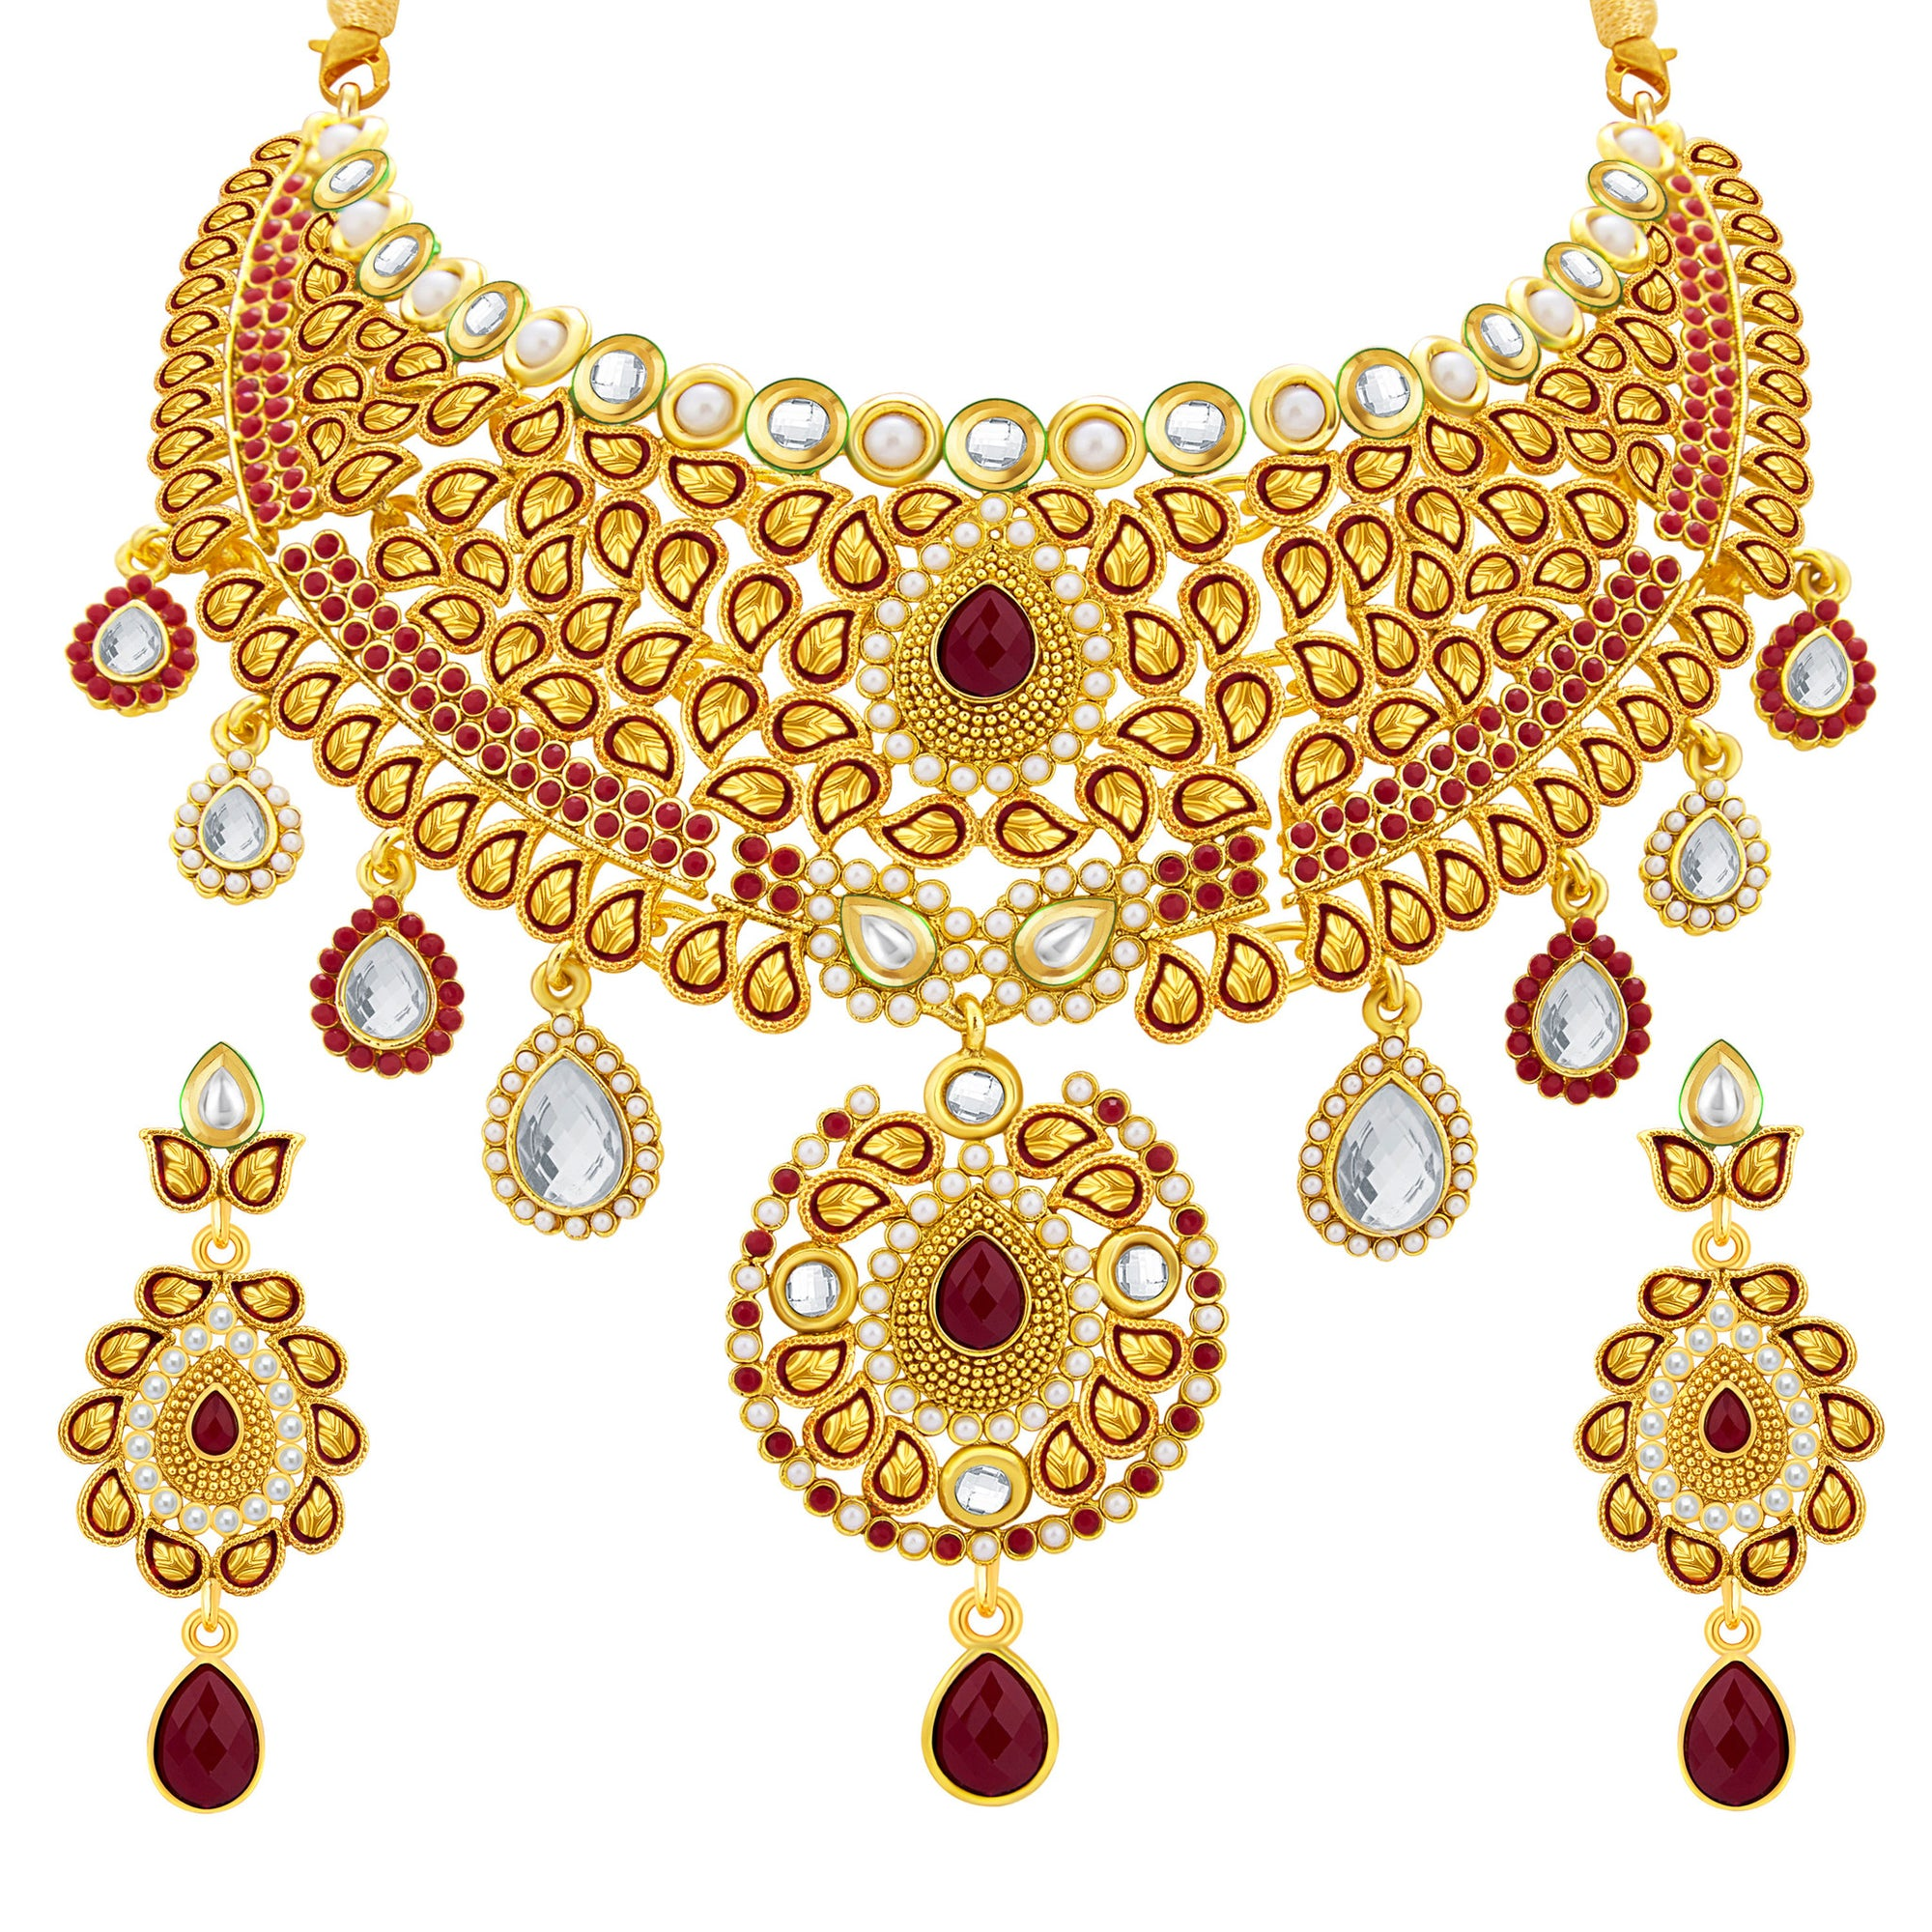 54838f013 Sukkhi Fancy Gold Plated AD Necklace Set For Women - Sukkhi.com